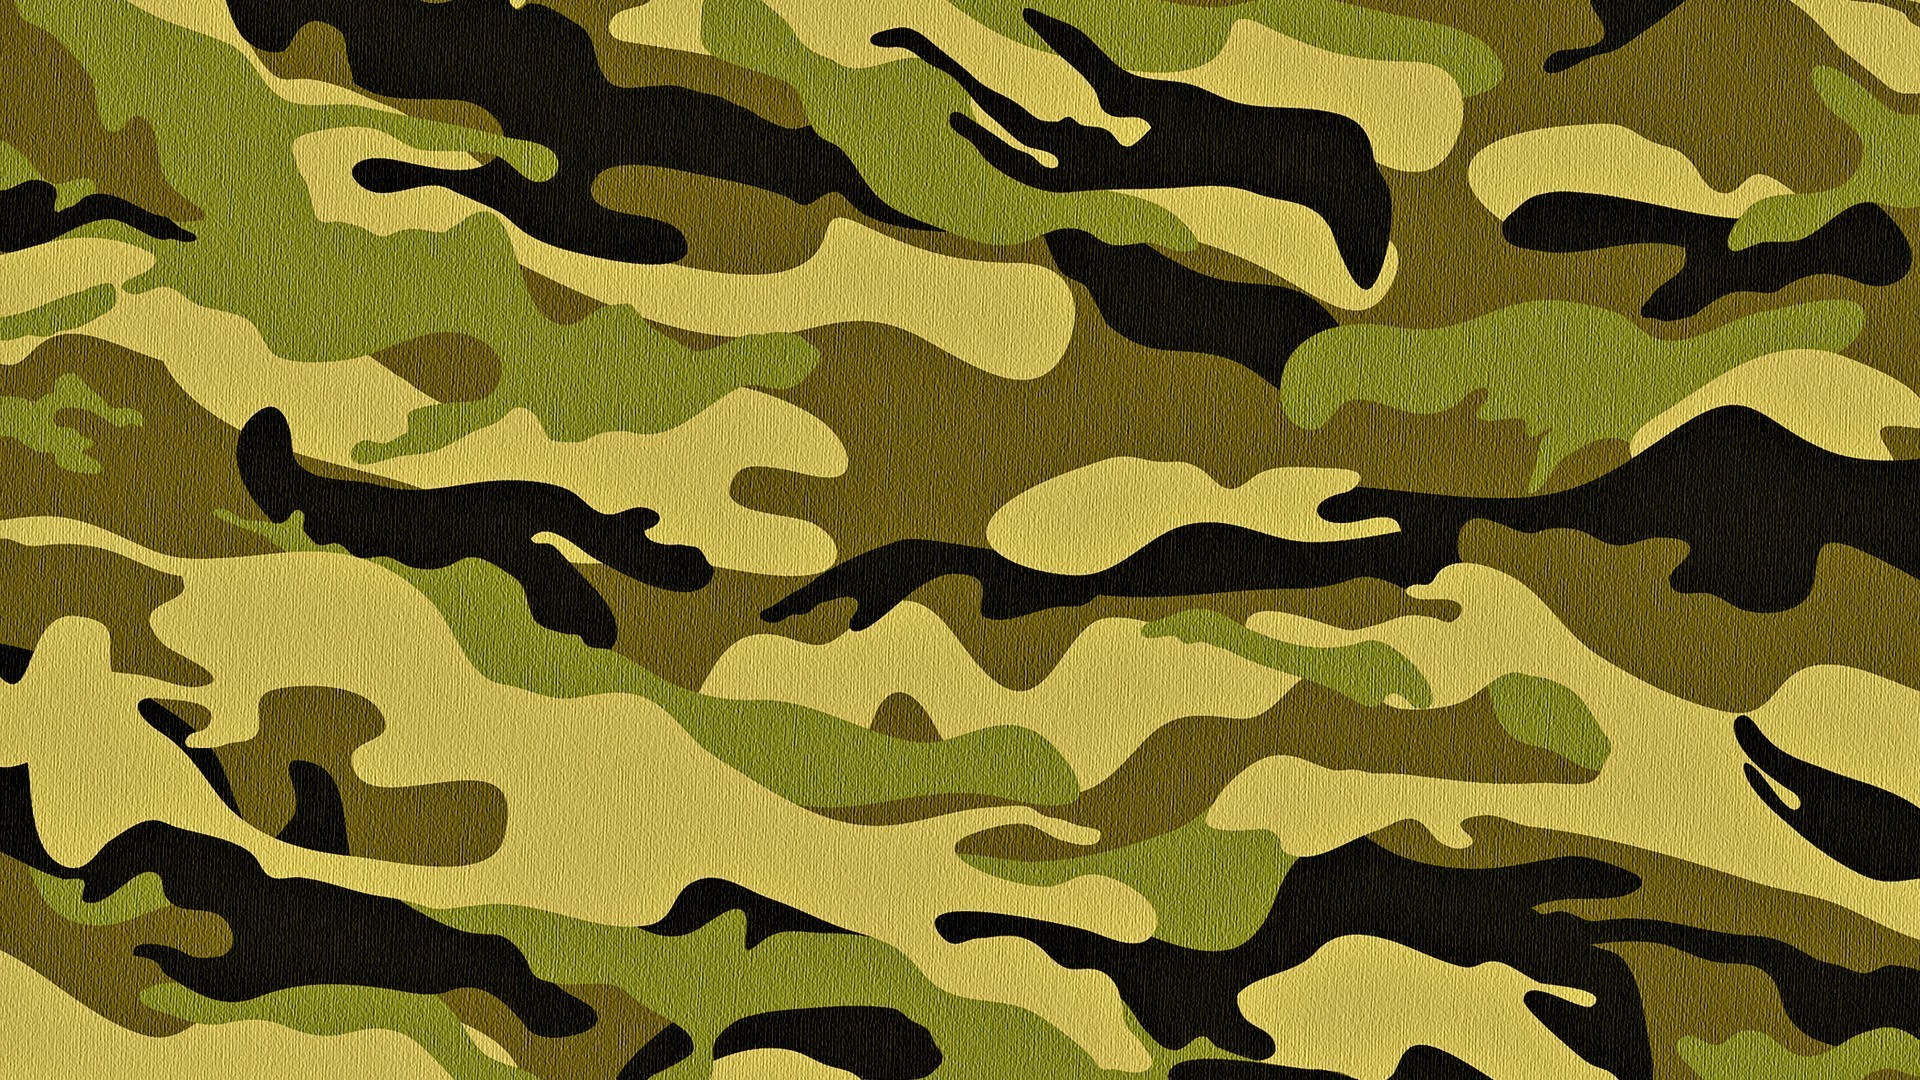 Res: 1920x1080, Textures camouflage wallpaper